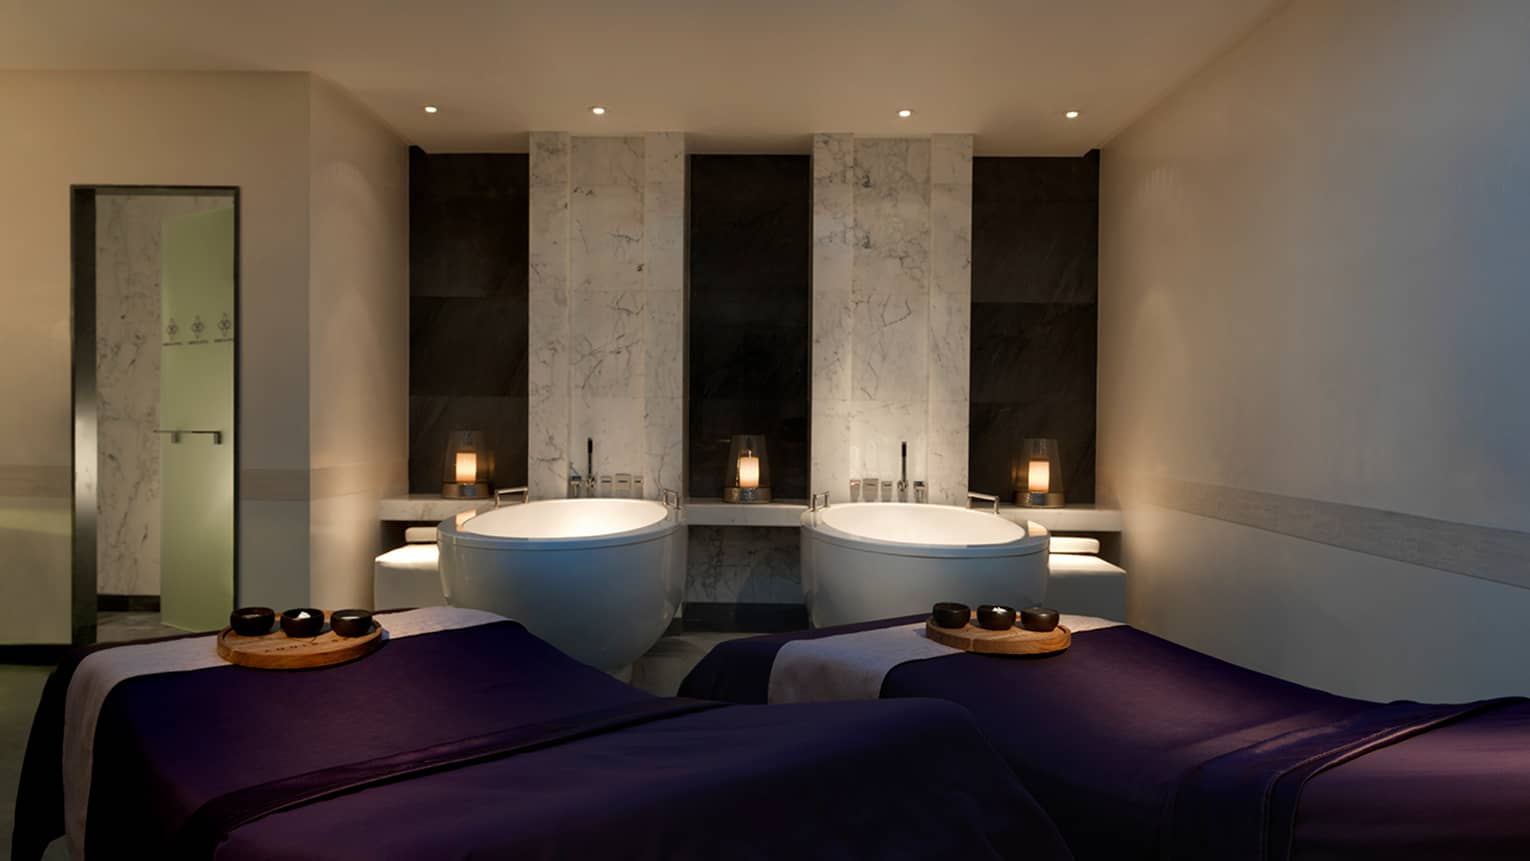 Couples Suite spa room with massage tables, sinks side-by-side in candle-lit room